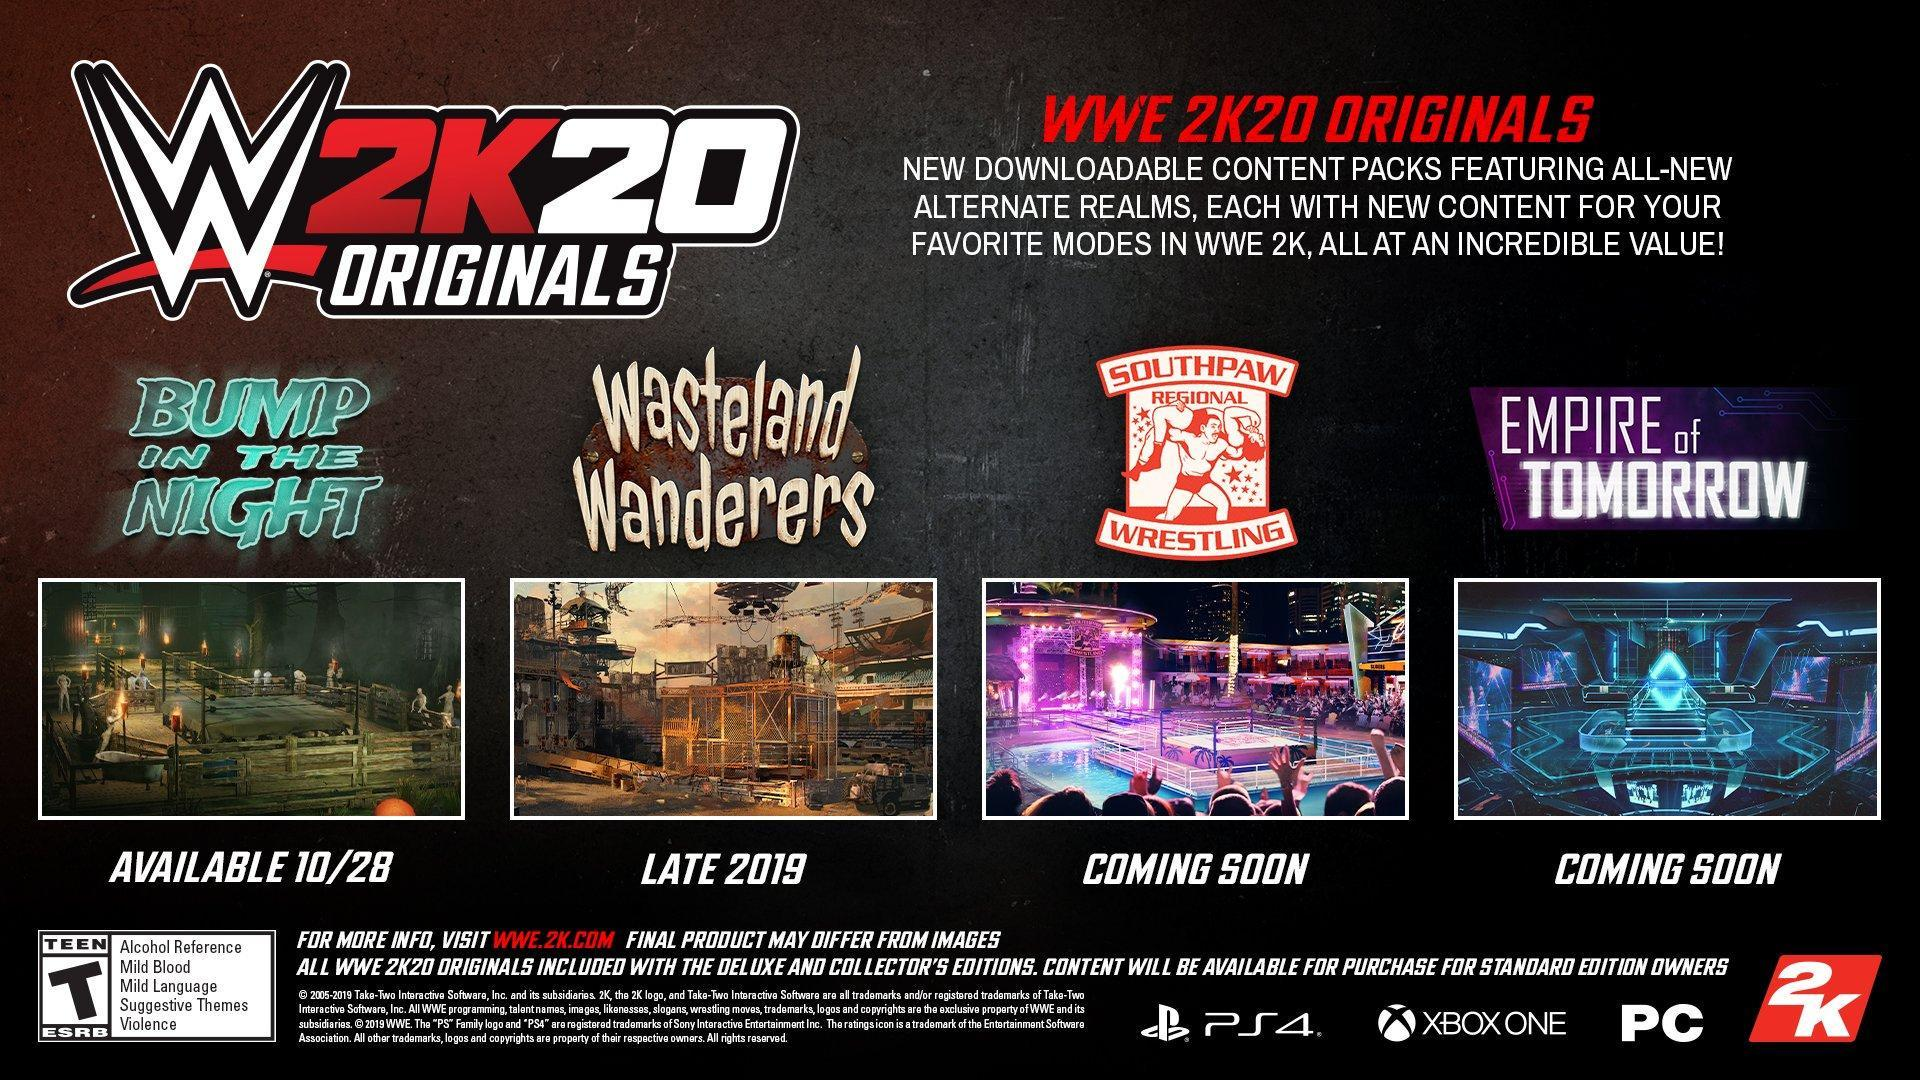 Wwe 2k20 Dlc Guide Complete Details On All 2k Originals Dlc Packs And Downloadable Content Wwe 2k20 Guides Wwe 2k20 Coverage News Updates